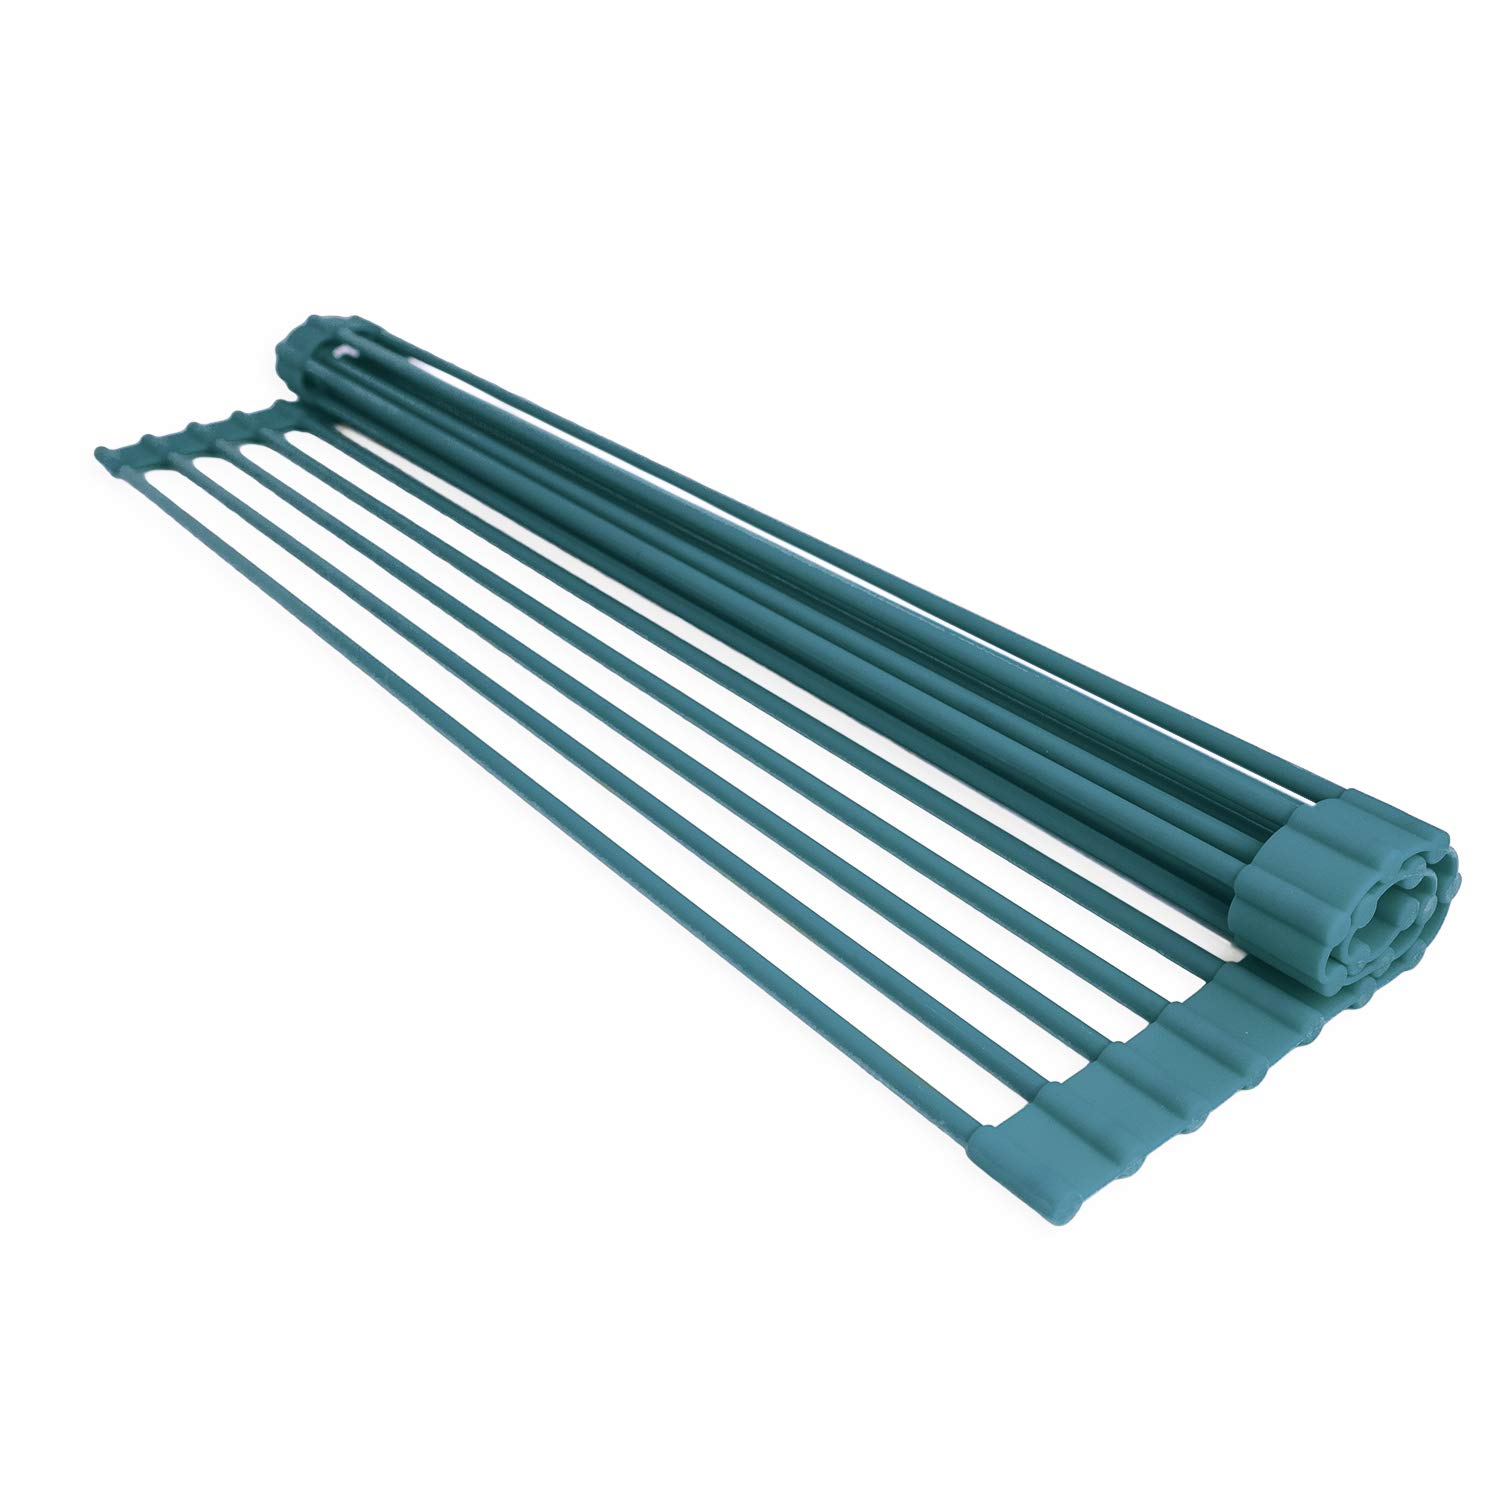 Over-the-Sink Dish Drying Rack by Domestic Corner - Roll-Up Dry Rack for Dishes, Plates, Cups, Pots, Pan and Produce - Turquoise